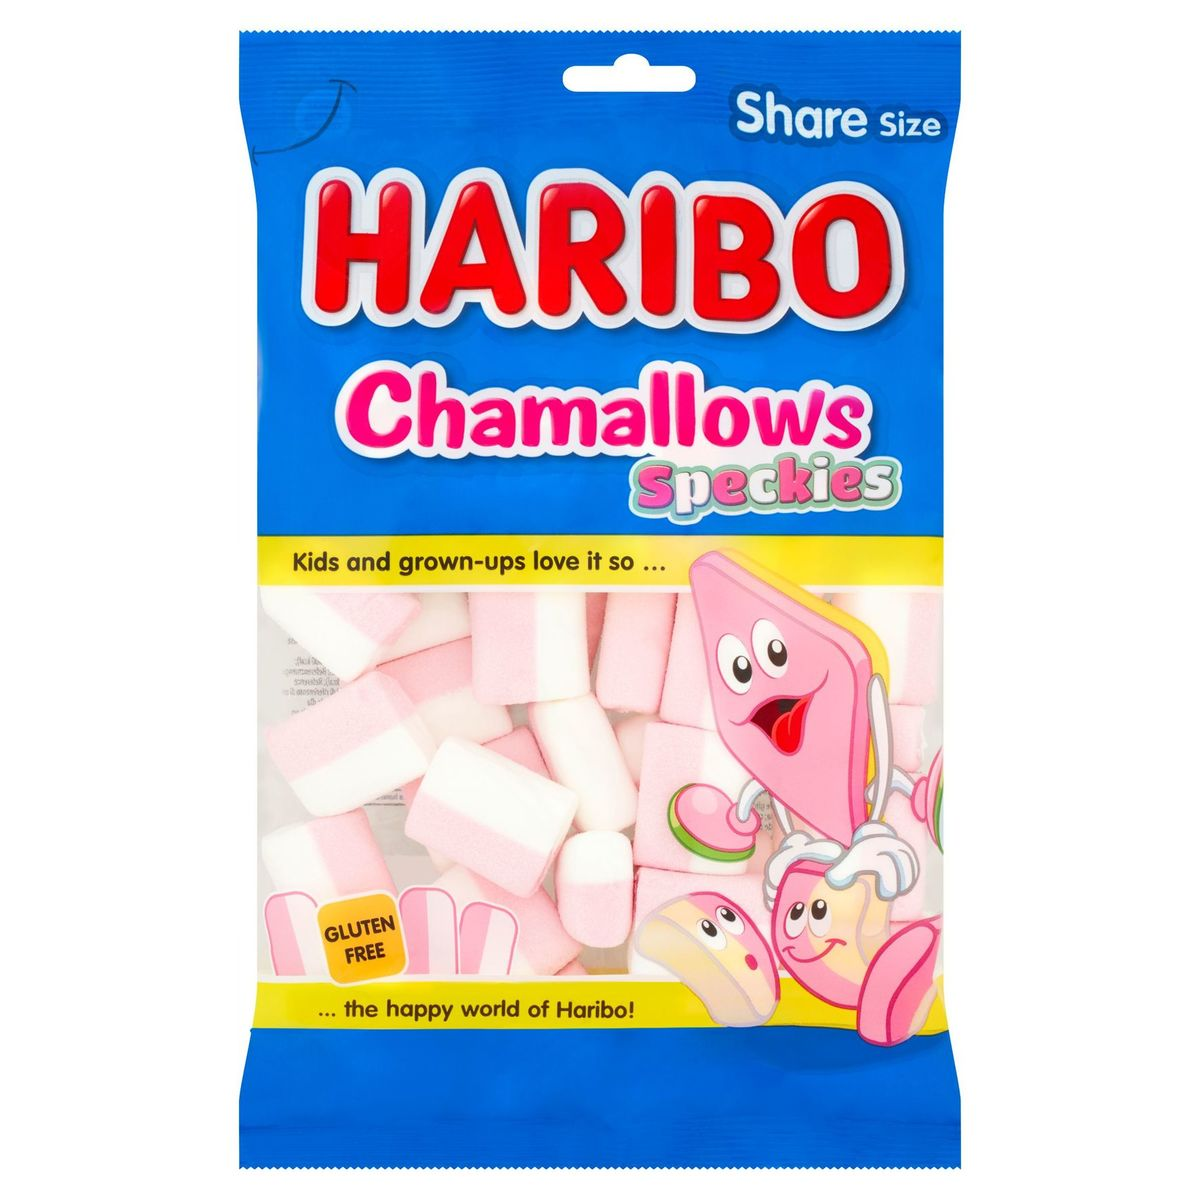 Haribo Chamallows Speckies Share Size 175 g